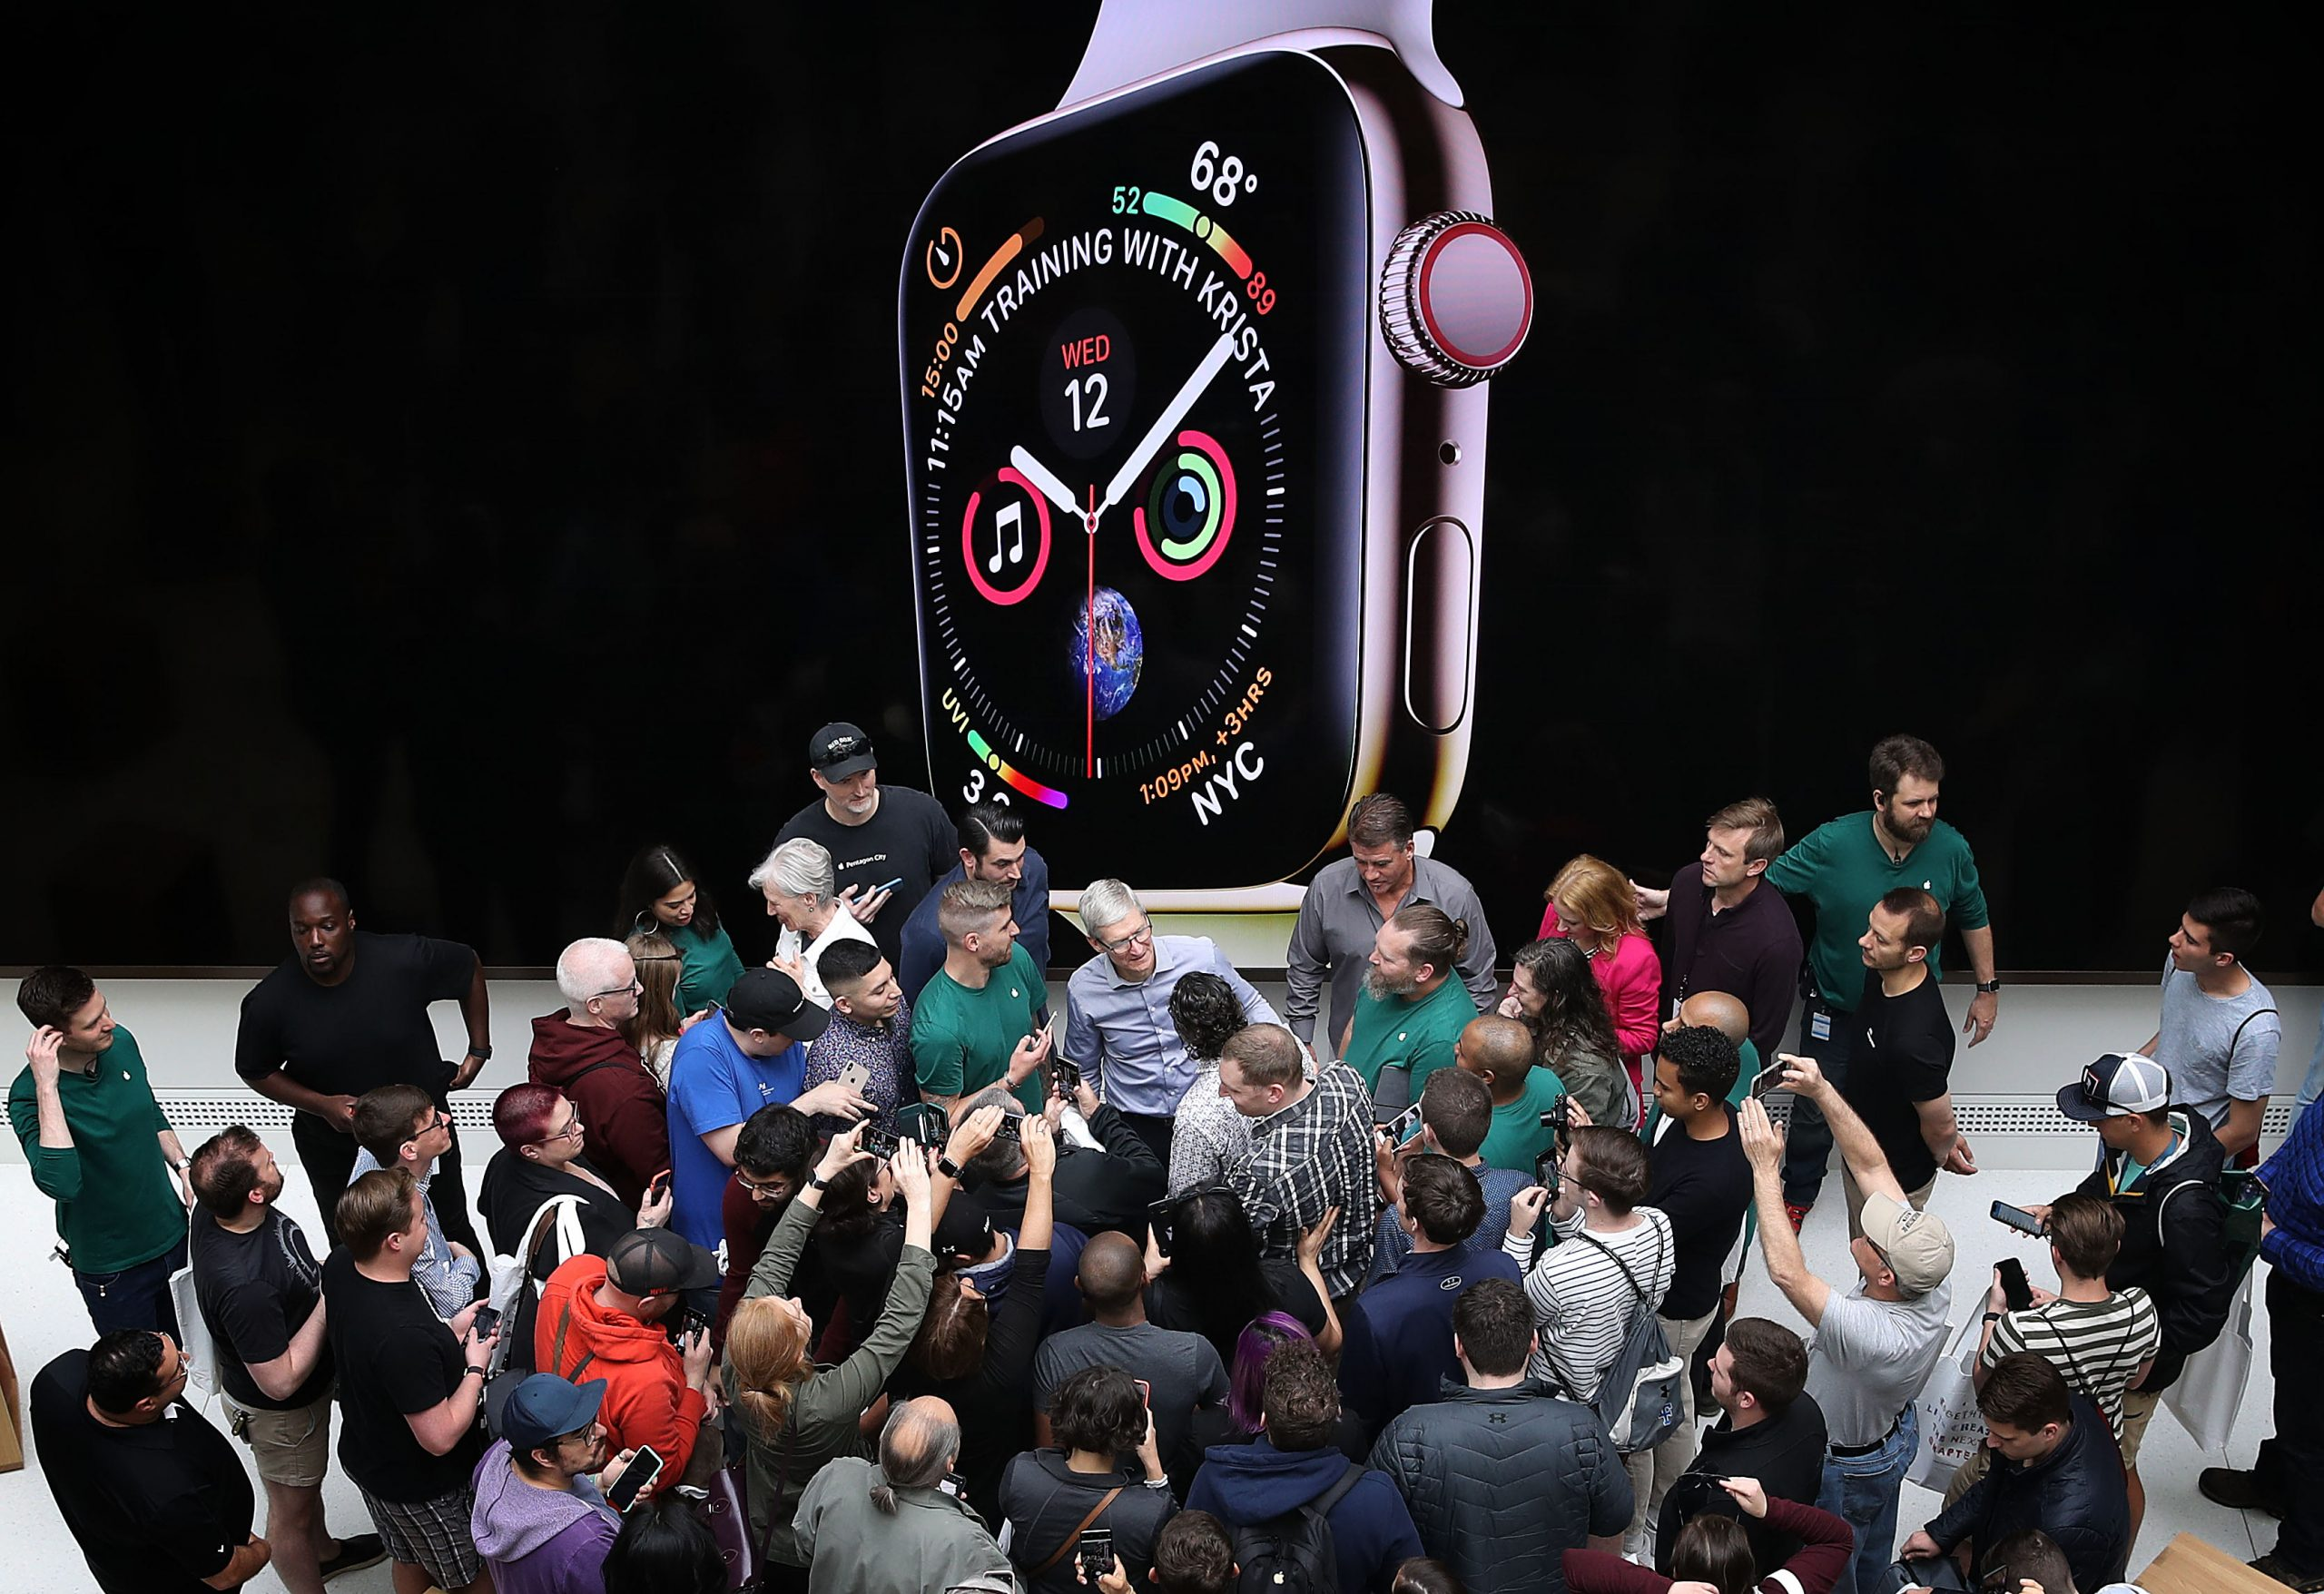 expect-new-ipad-air-and-apple-watch-6-at-apple's-tuesday-event,-analyst-says